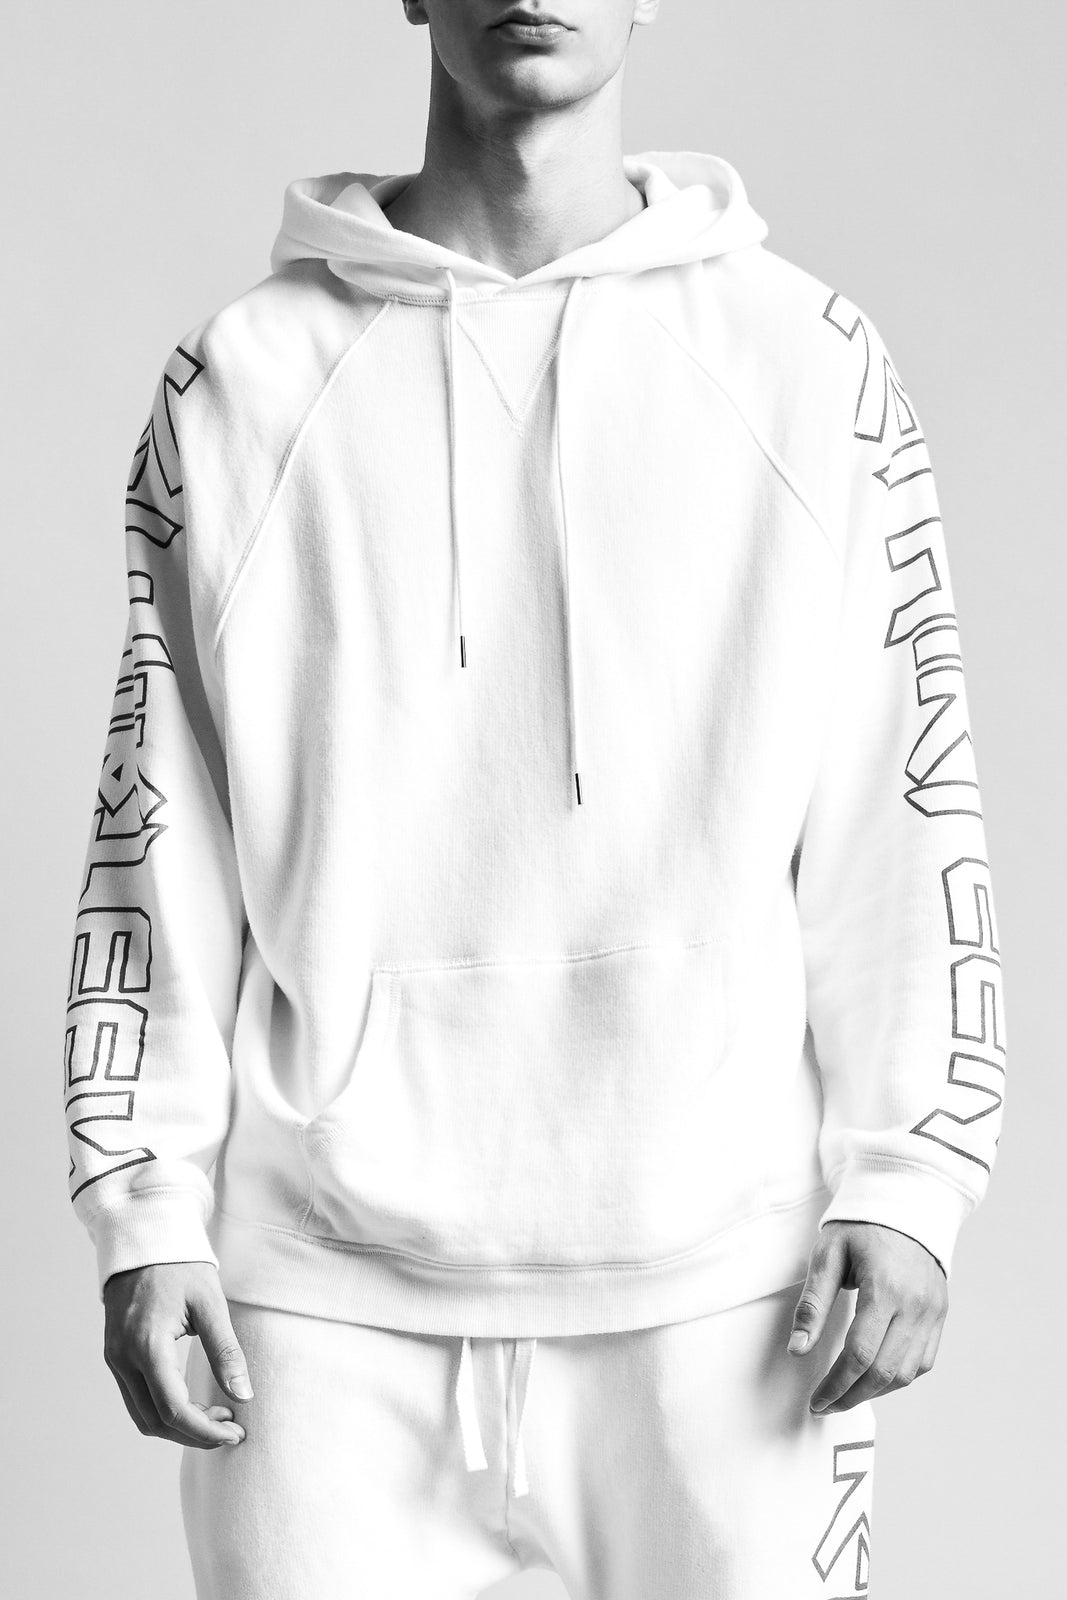 R13 classic oversized pullover white hoodie with RTHIRTEEN red writing down sleeves